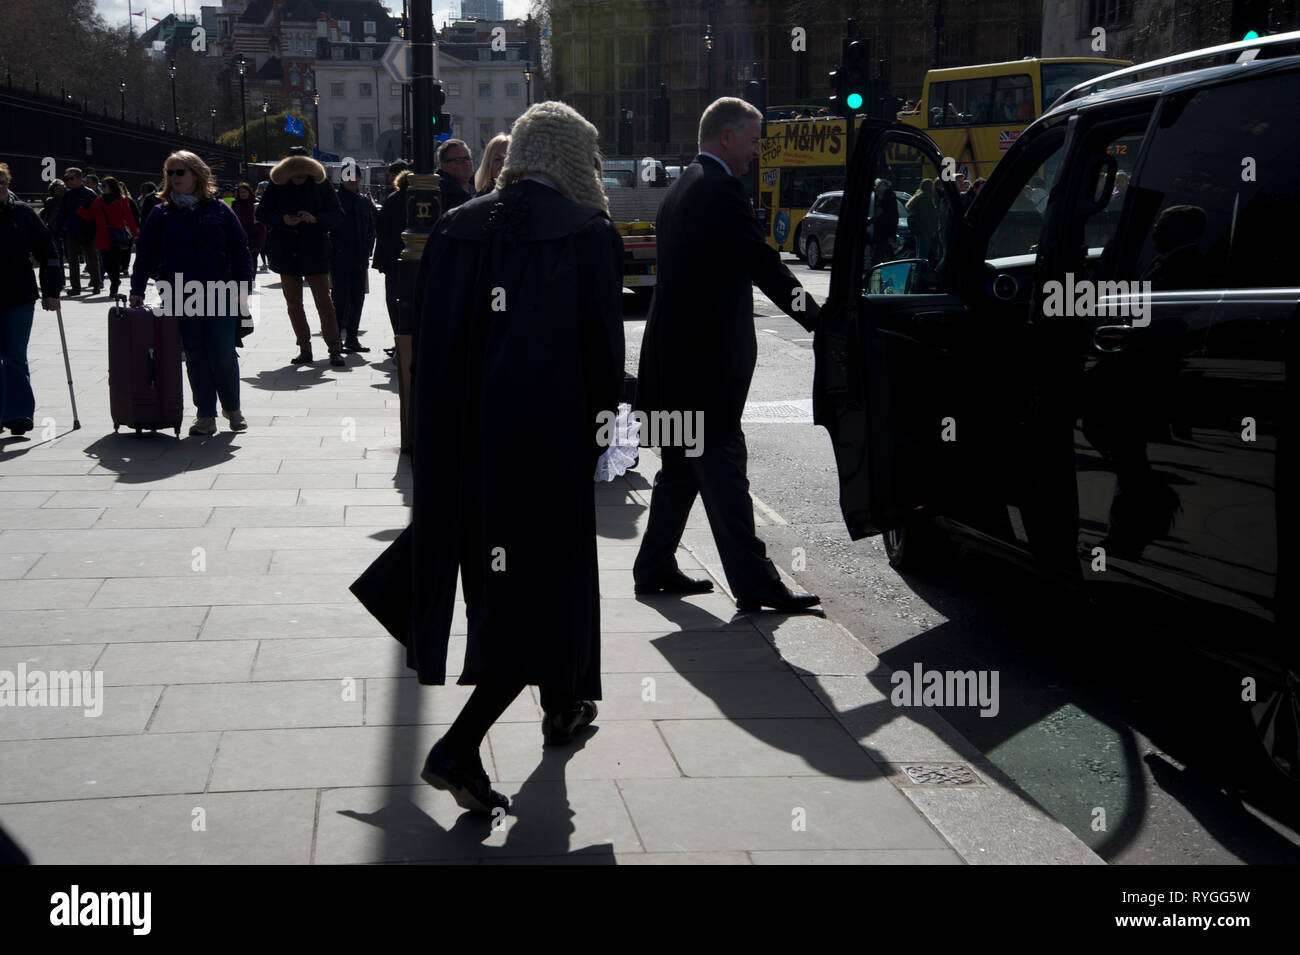 Monday March 11th 2019. Parliament Square. A newly appointed Queens Counsel about to get into a taxi - Stock Image